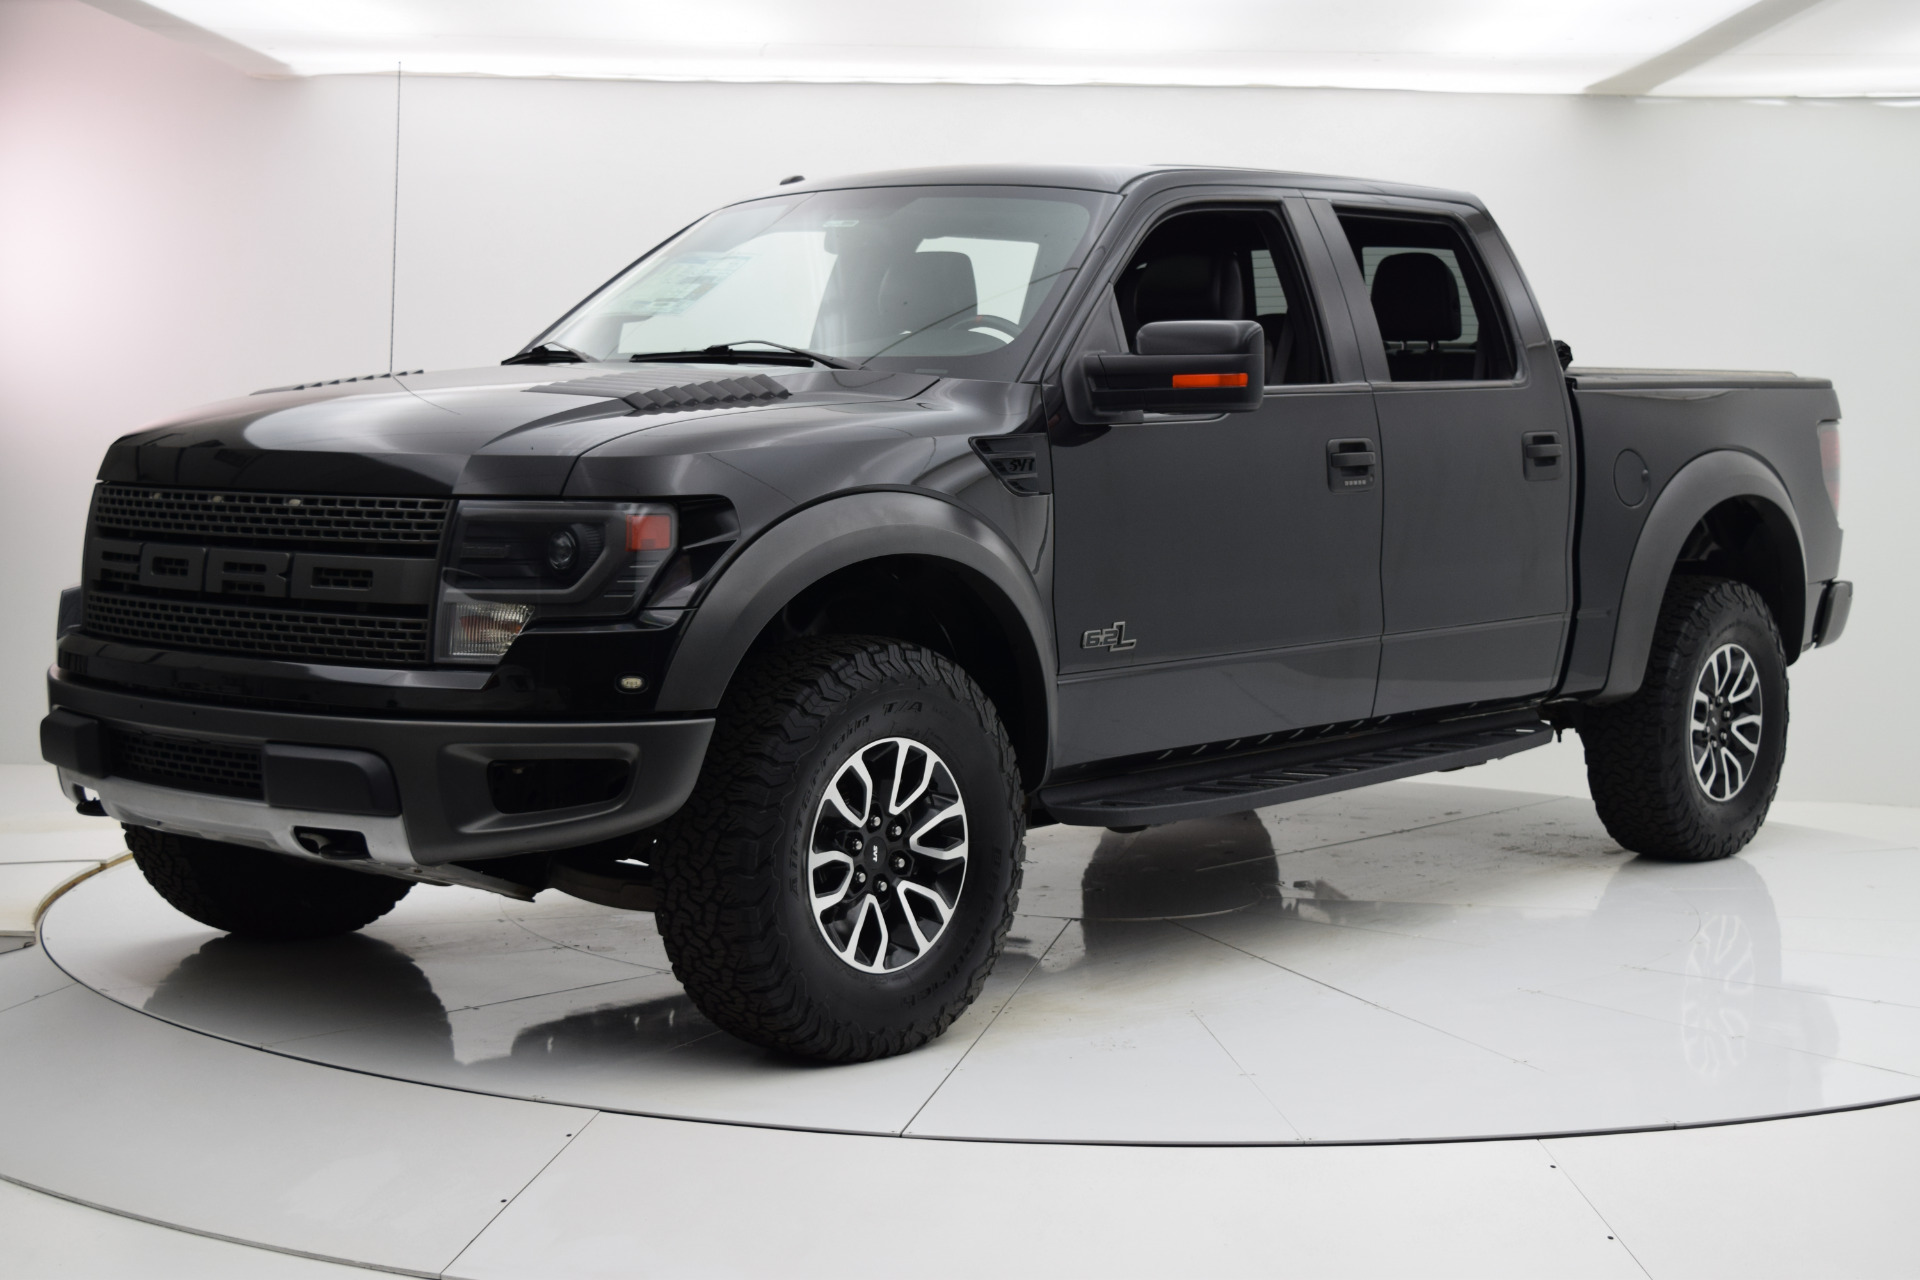 Used 2013 Ford F-150 SVT Raptor for sale Sold at F.C. Kerbeck Aston Martin in Palmyra NJ 08065 2